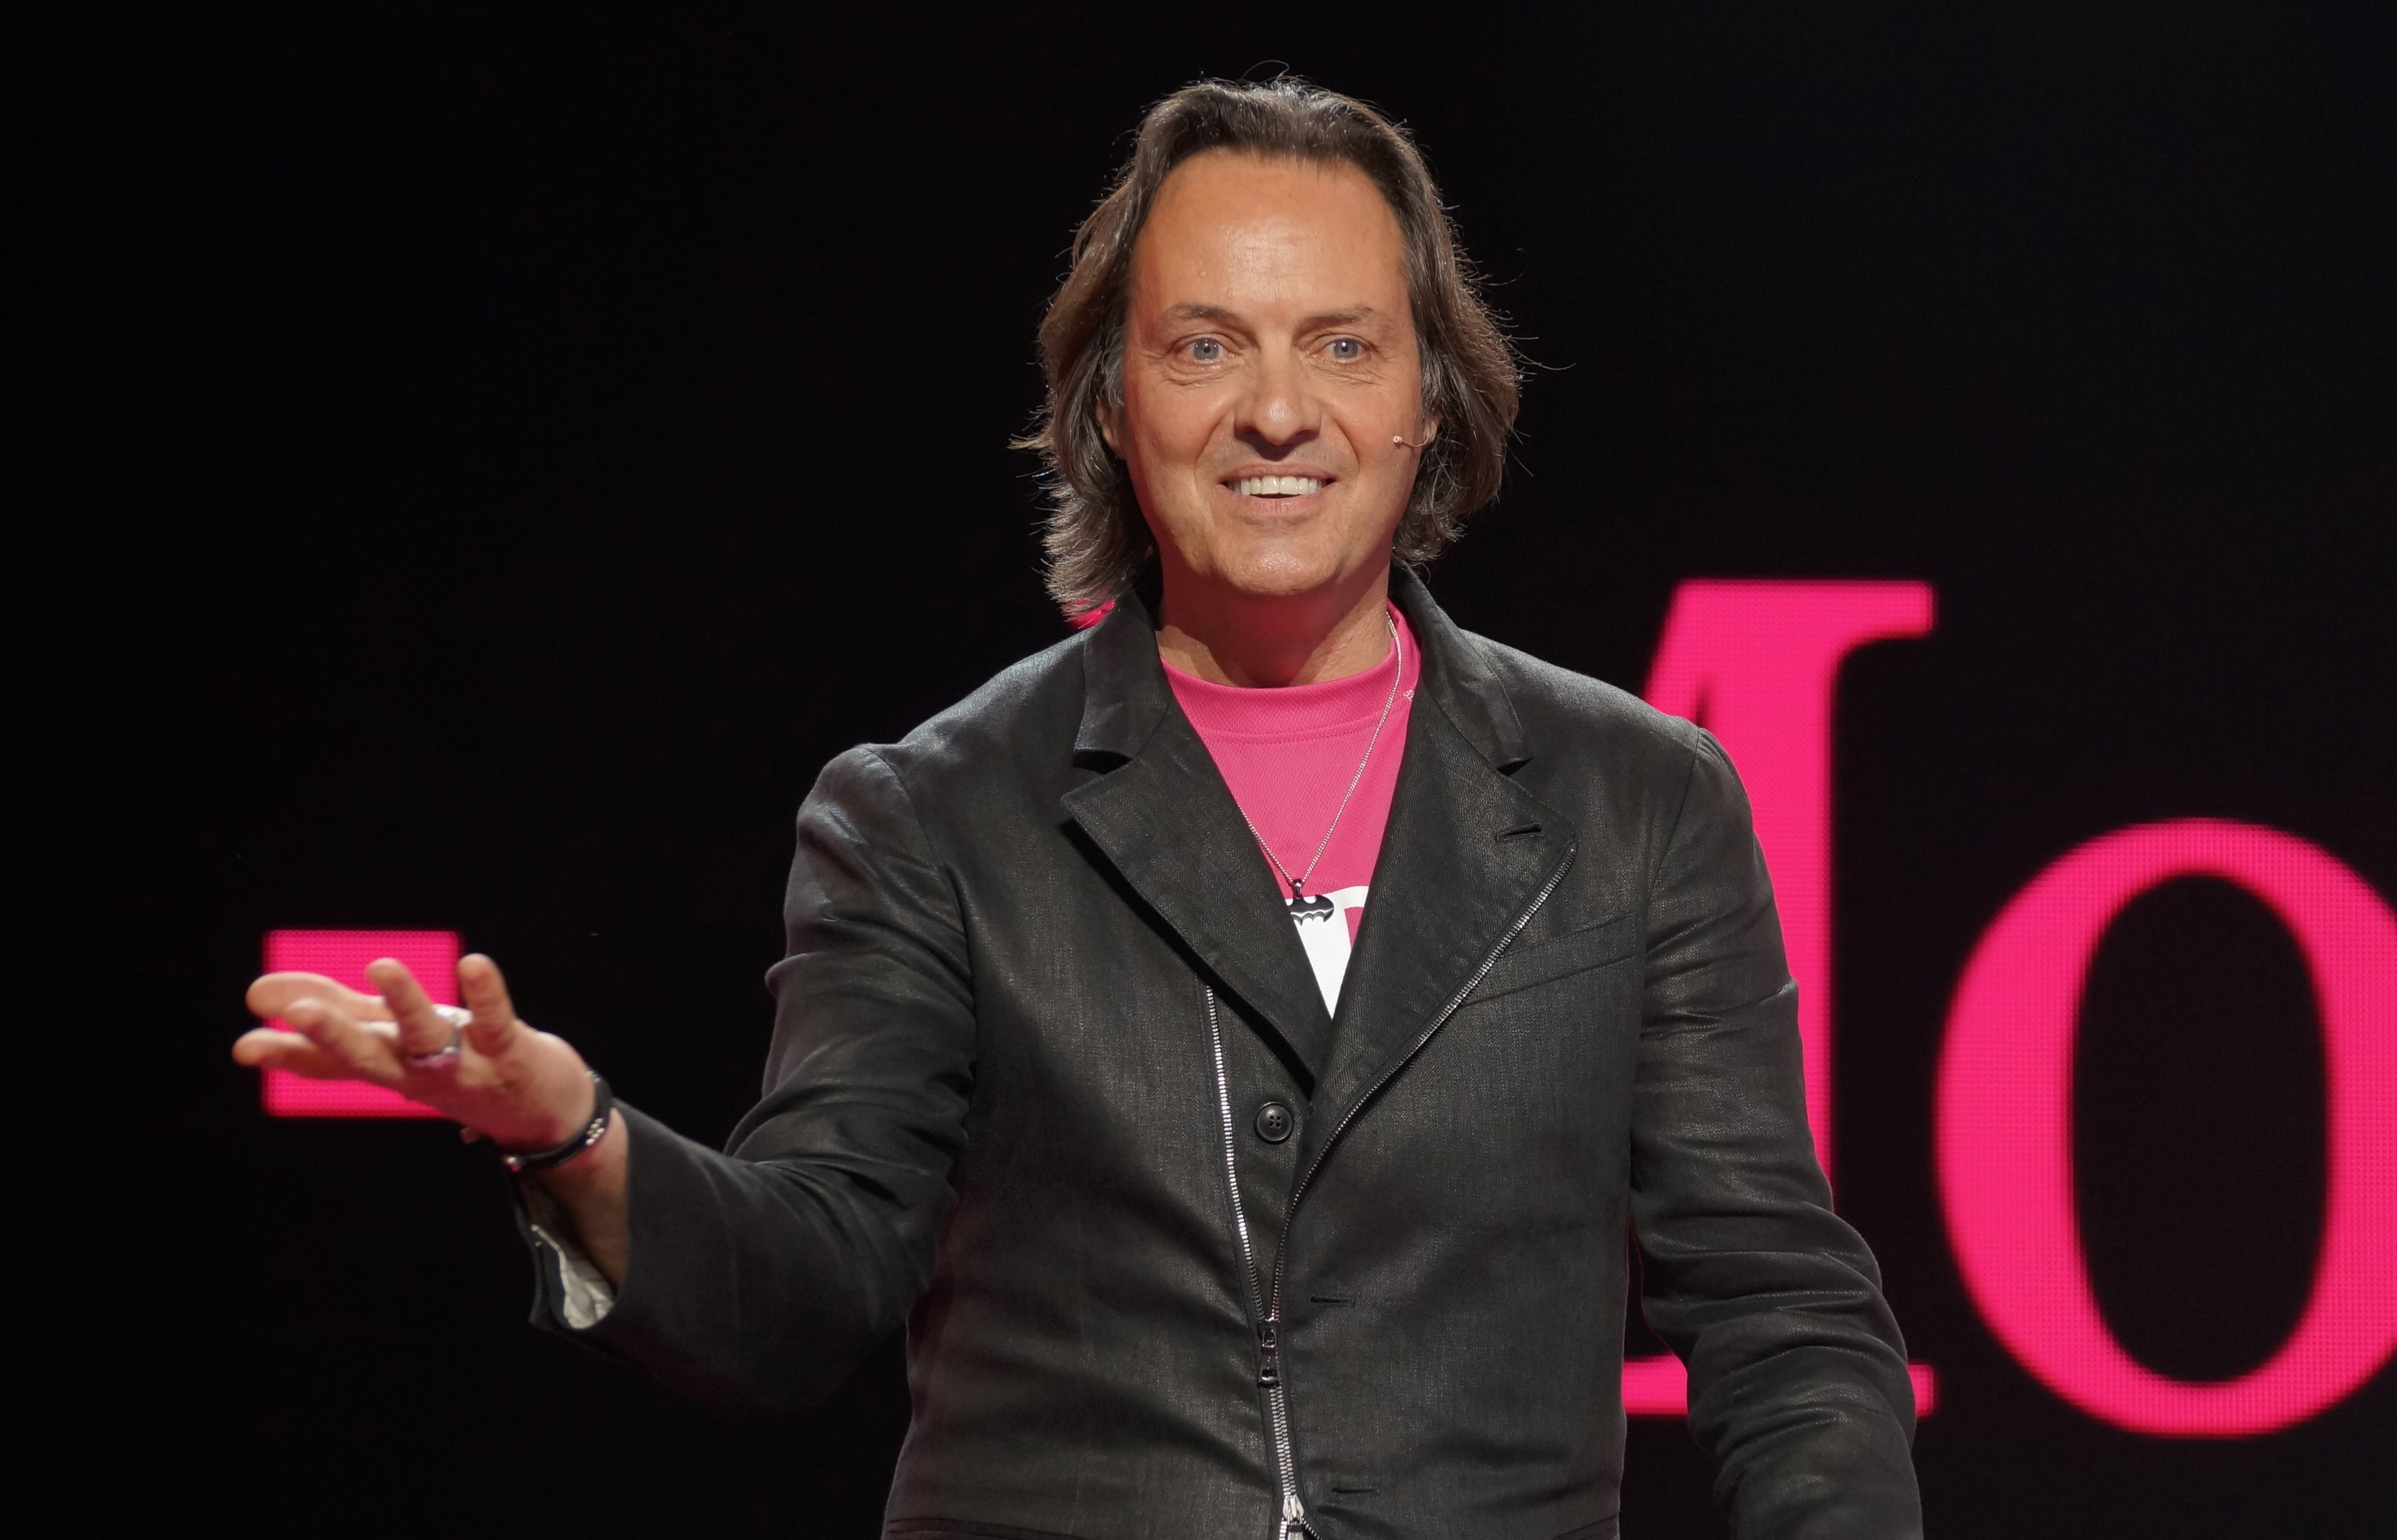 T Mobile Ceo John Legere Gets Salary Increase And Contract